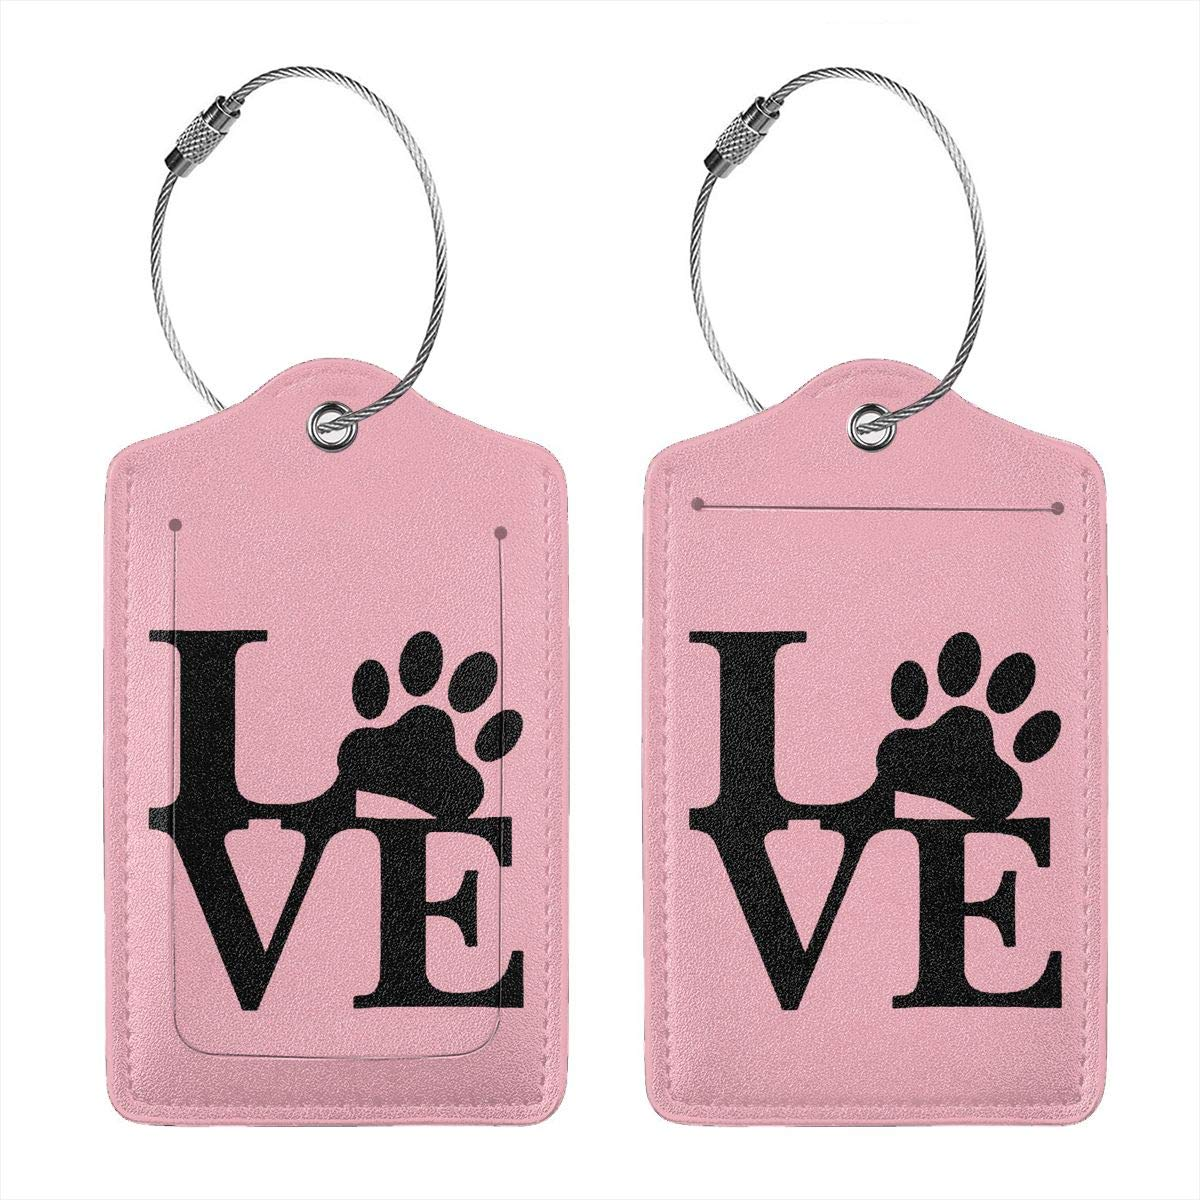 Love Paw Leather Luggage Tags Suitcase Tag Travel Bag Labels With Privacy Cover For Men Women 2 Pack 4 Pack